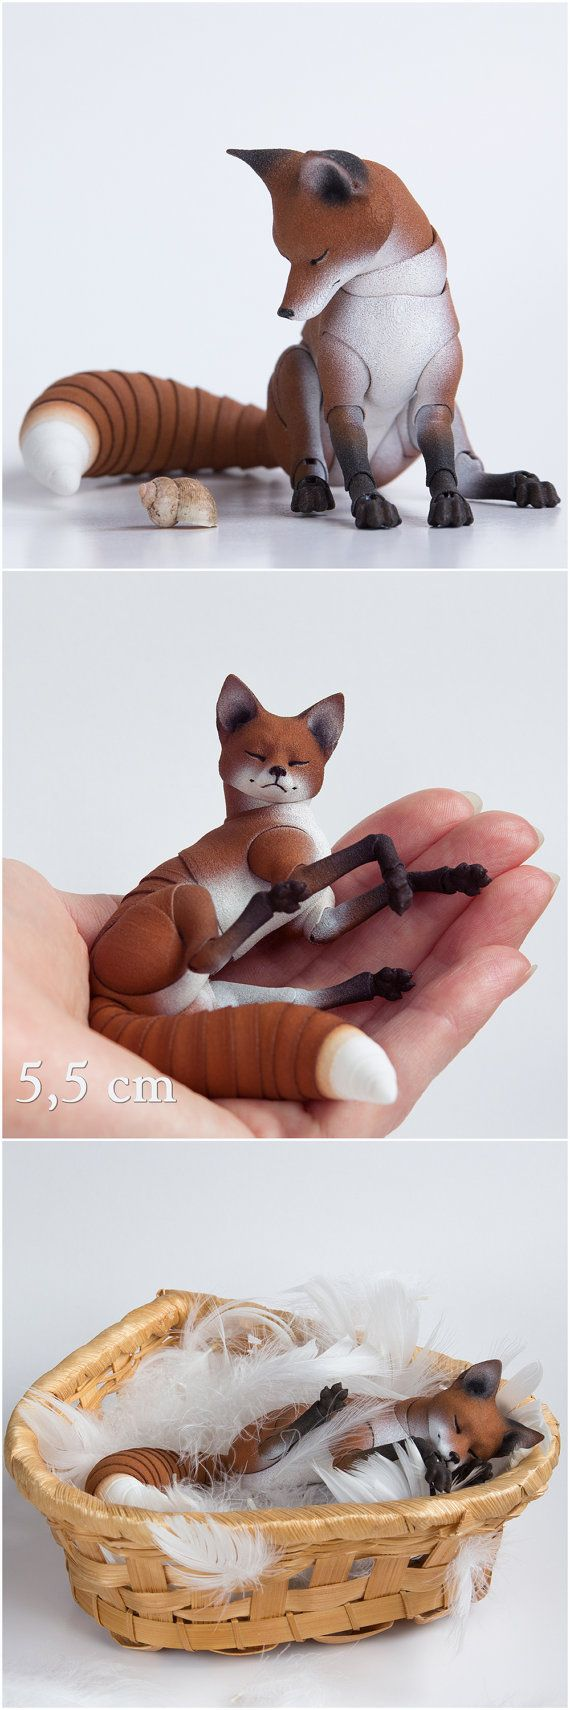 The ball jointed doll Adult fox has several features:  • The doll is made very movable and flexible. It easily takes poses and holds them.  •